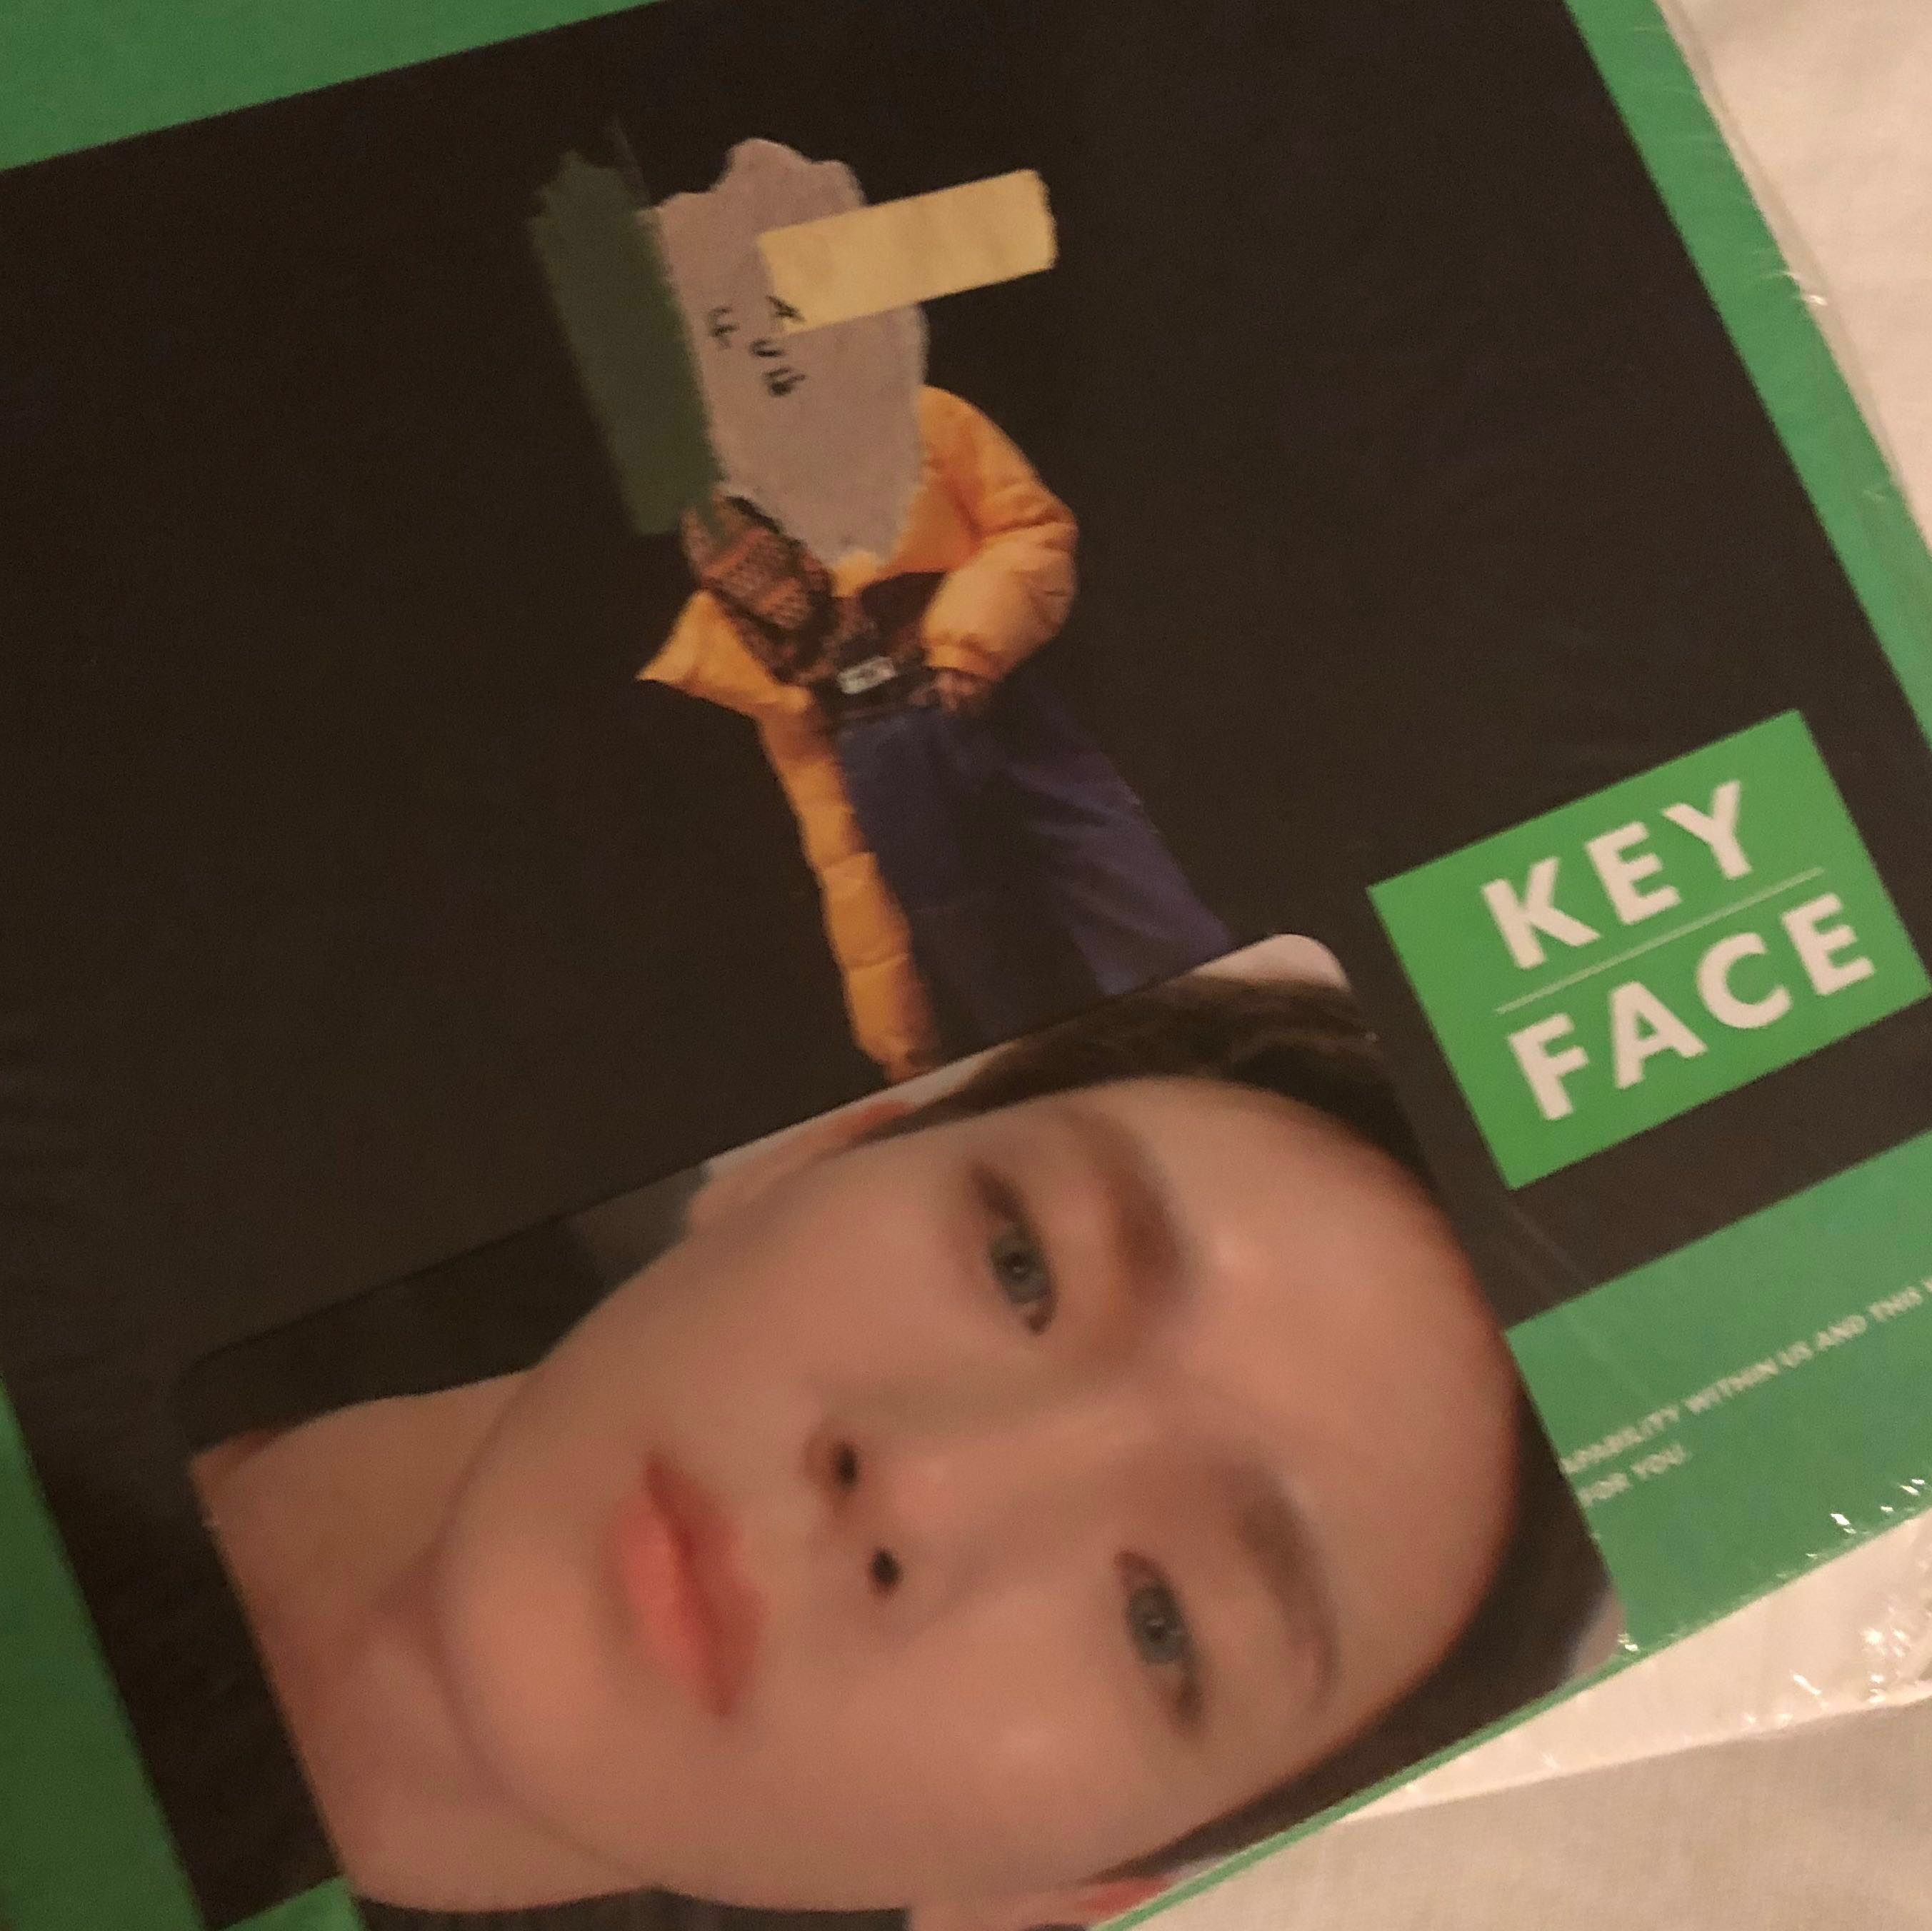 FACE - SHINee KEY Solo Album + Photo card!!!